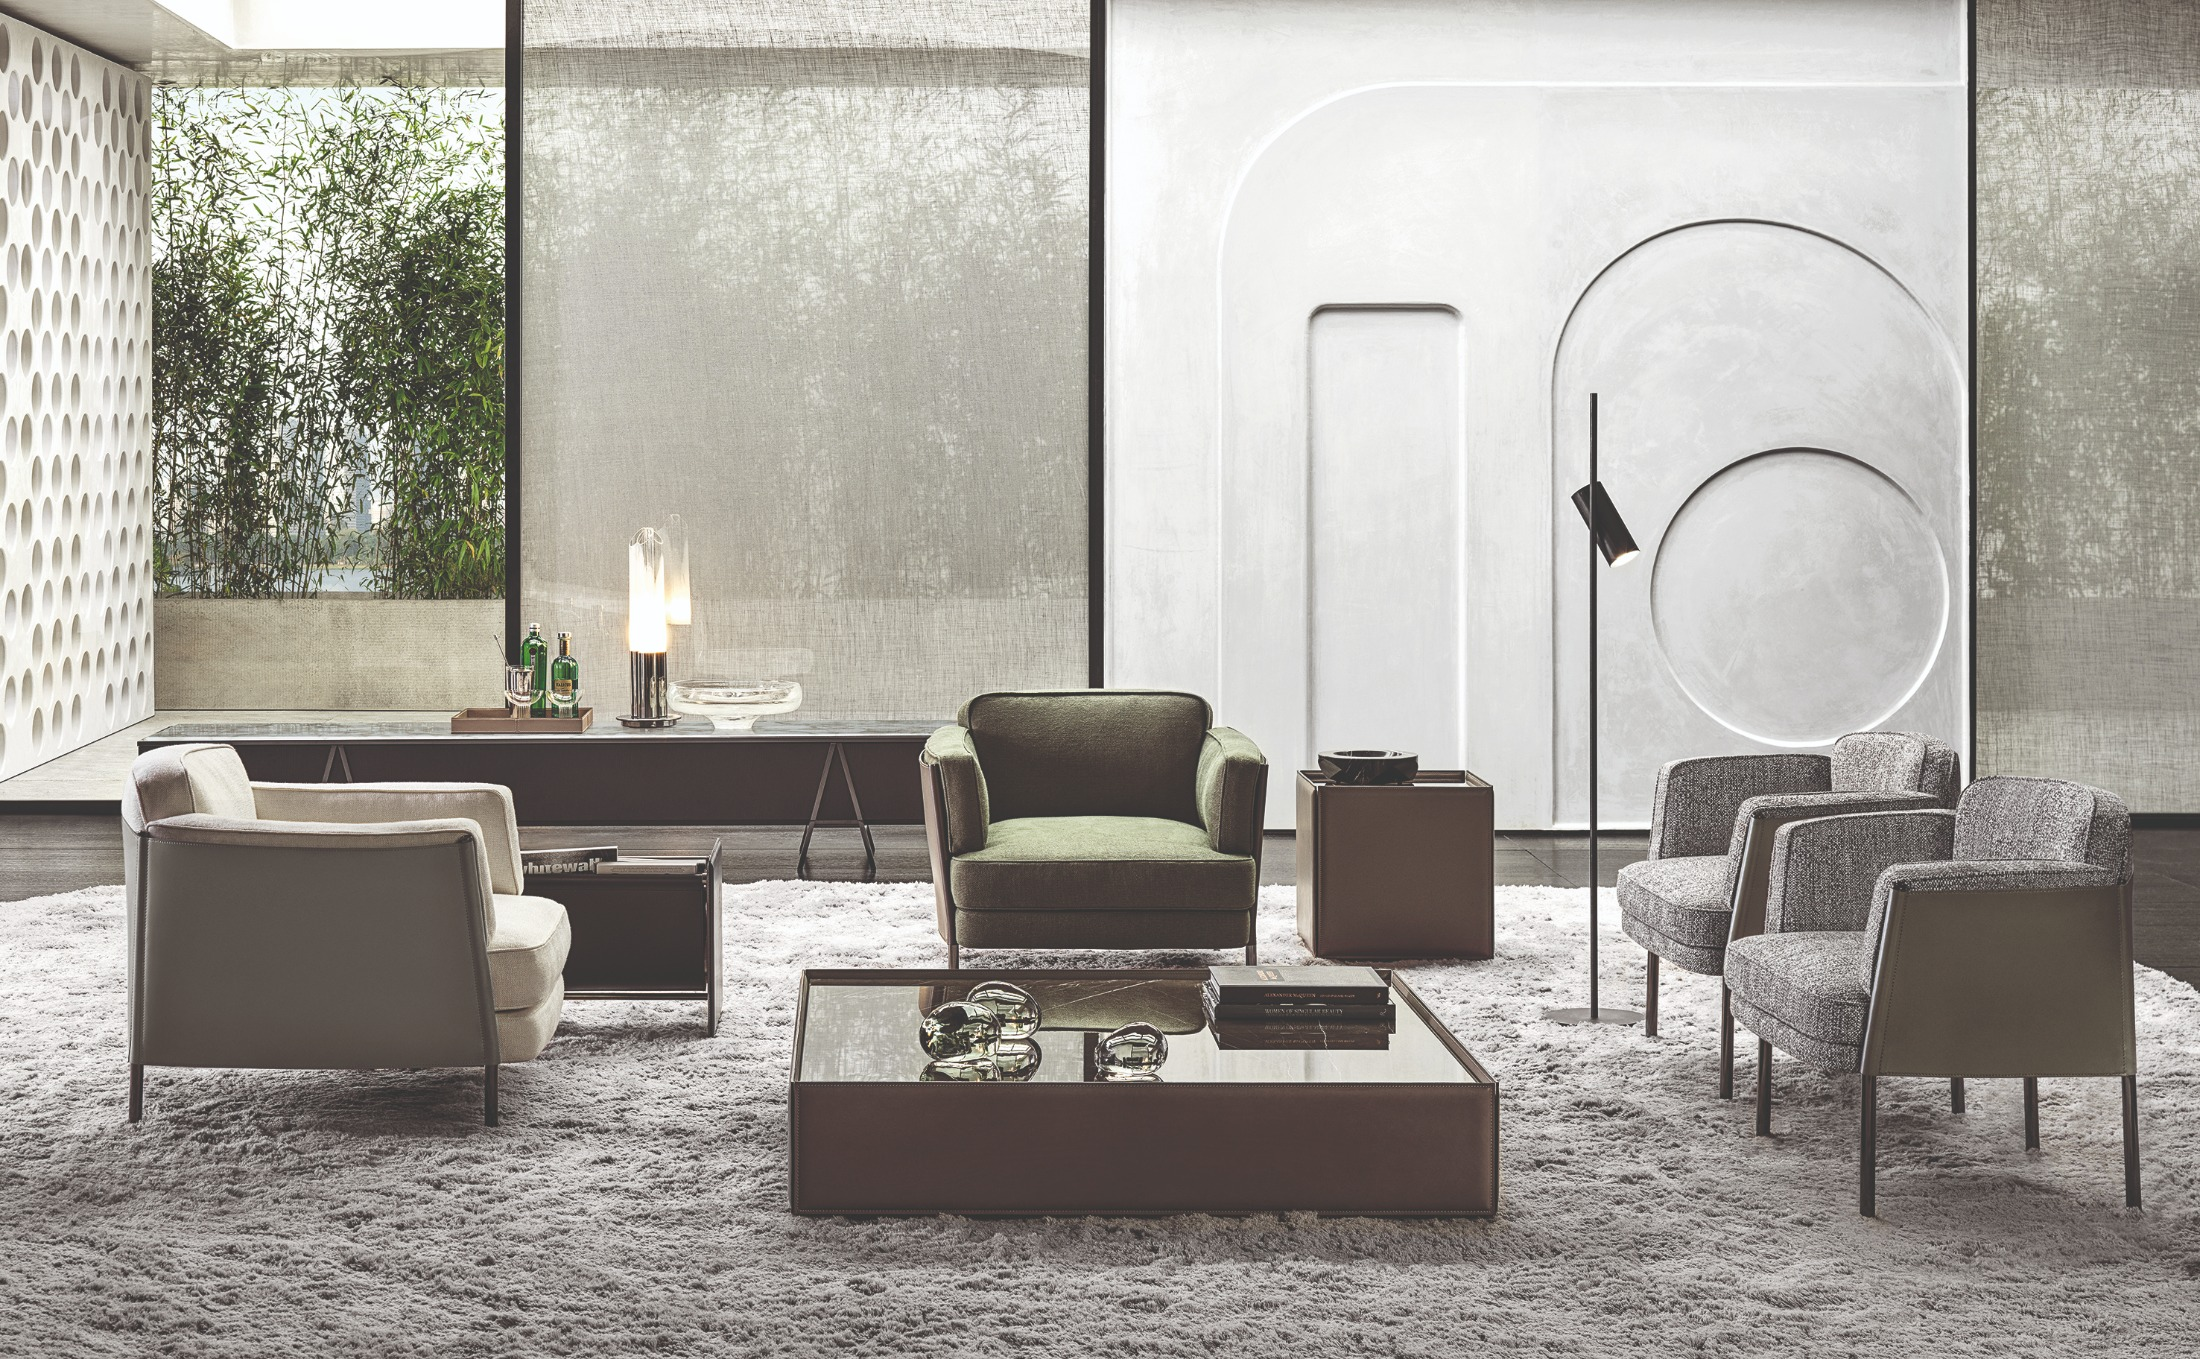 The Best Seat in the House with Minotti